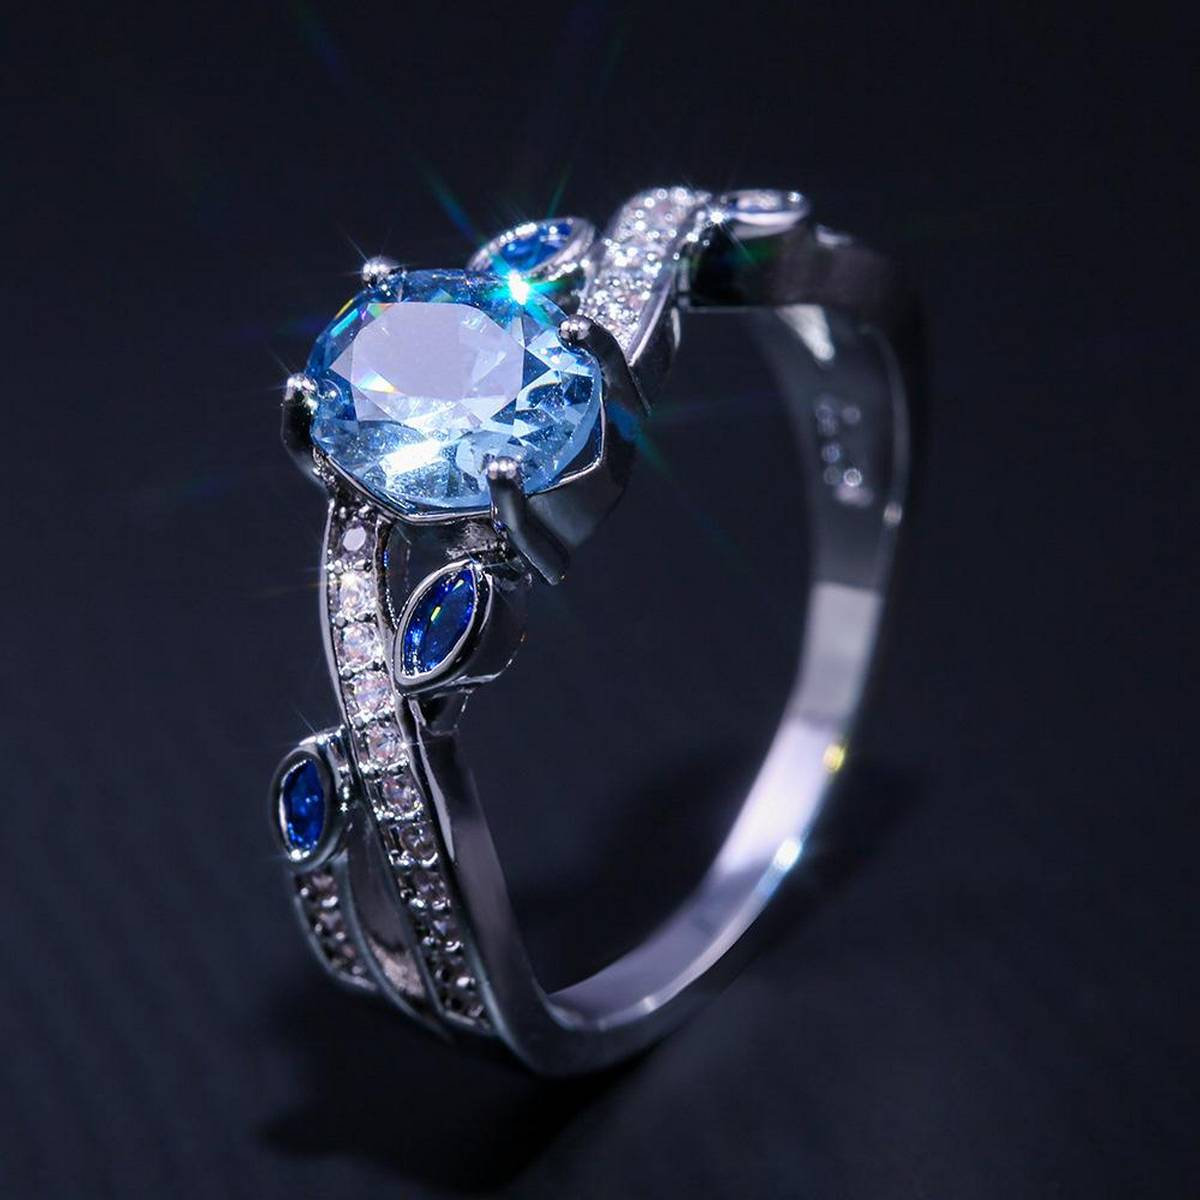 Imported High Quality Engagement Silver Plating Blue Zircon Diamond Rings for Girls Women - HS-B2808